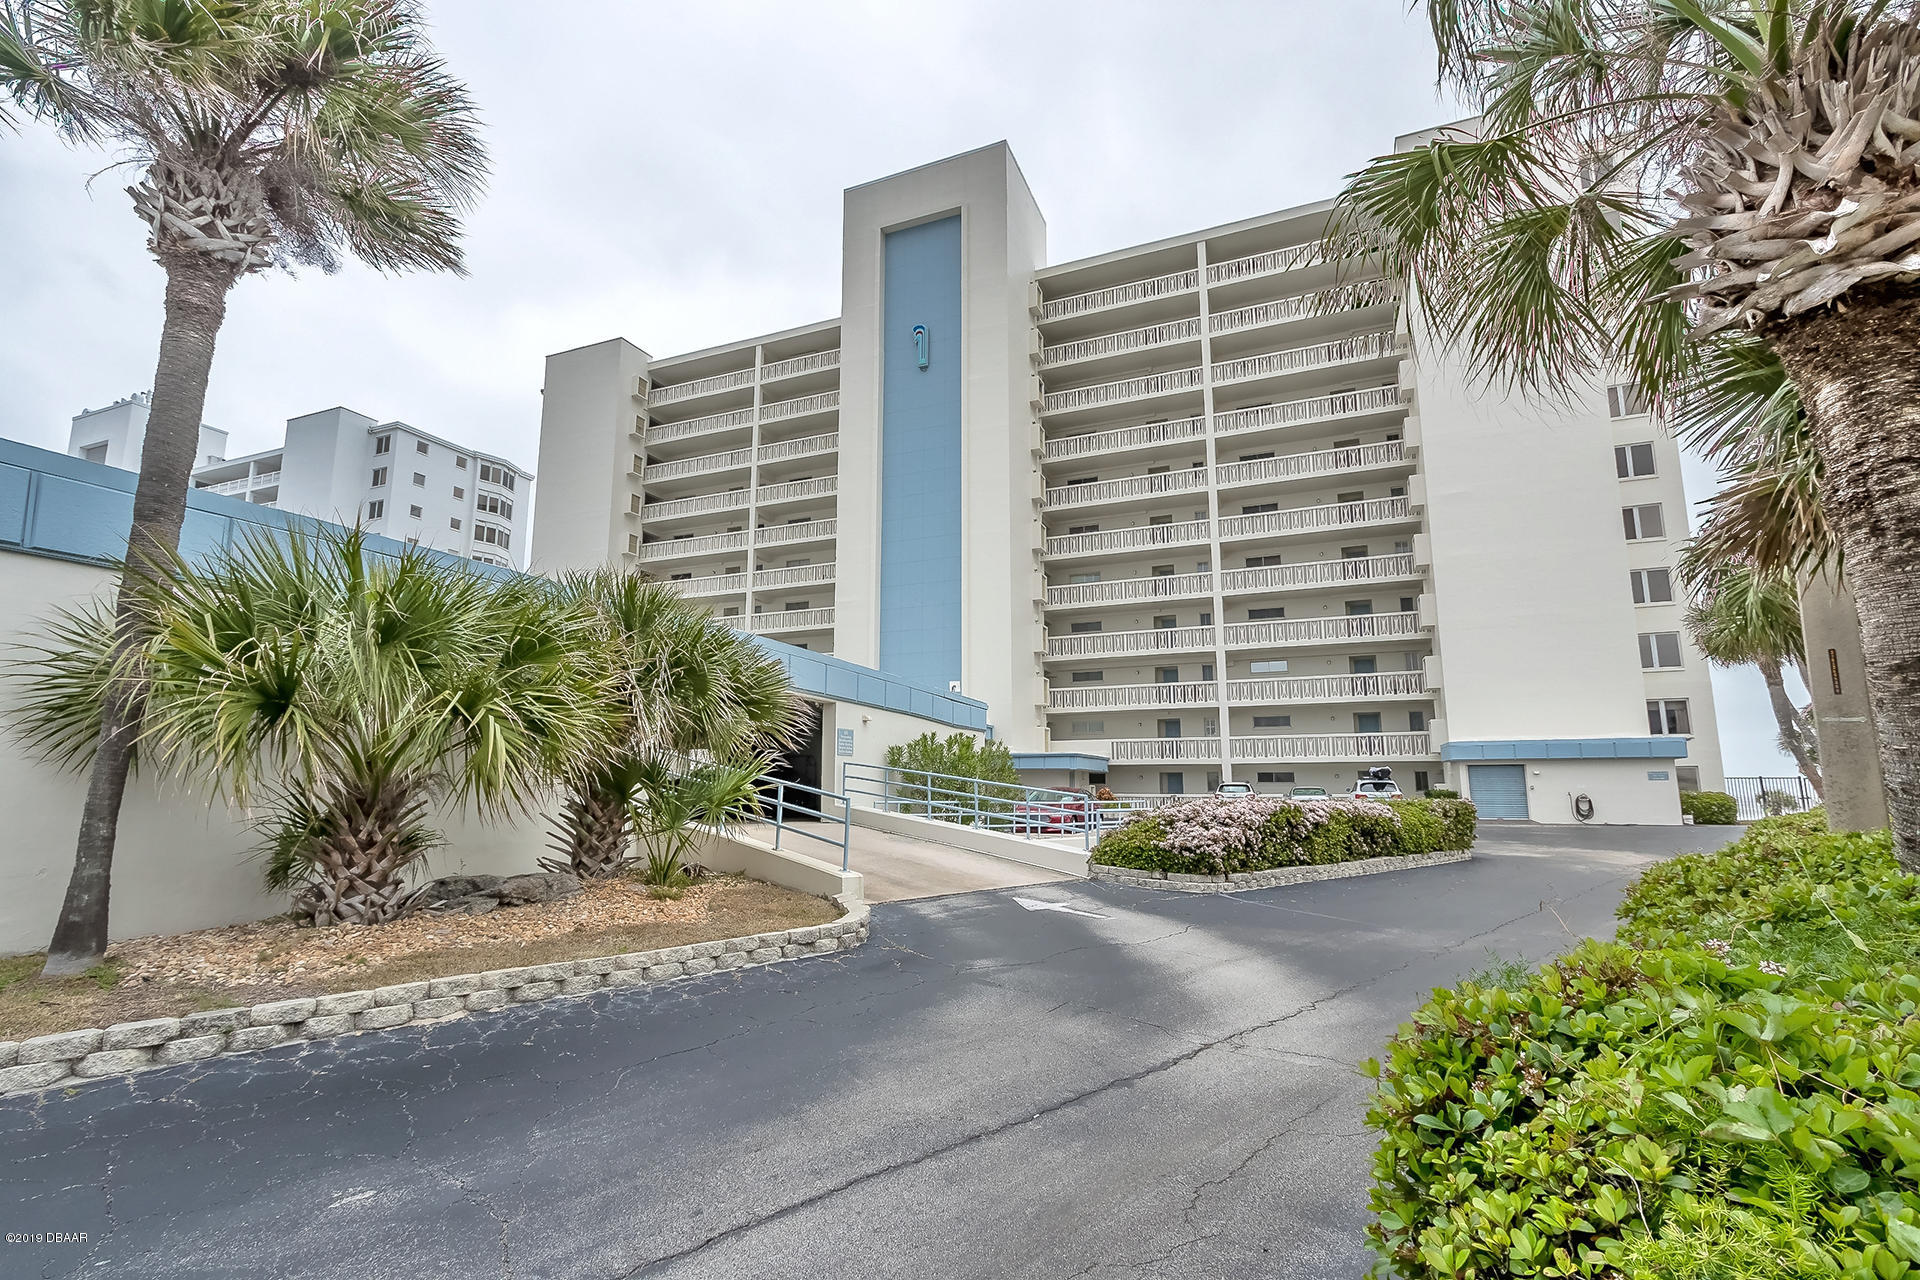 1133 Ocean Shore Boulevard, Ormond Beach, Florida